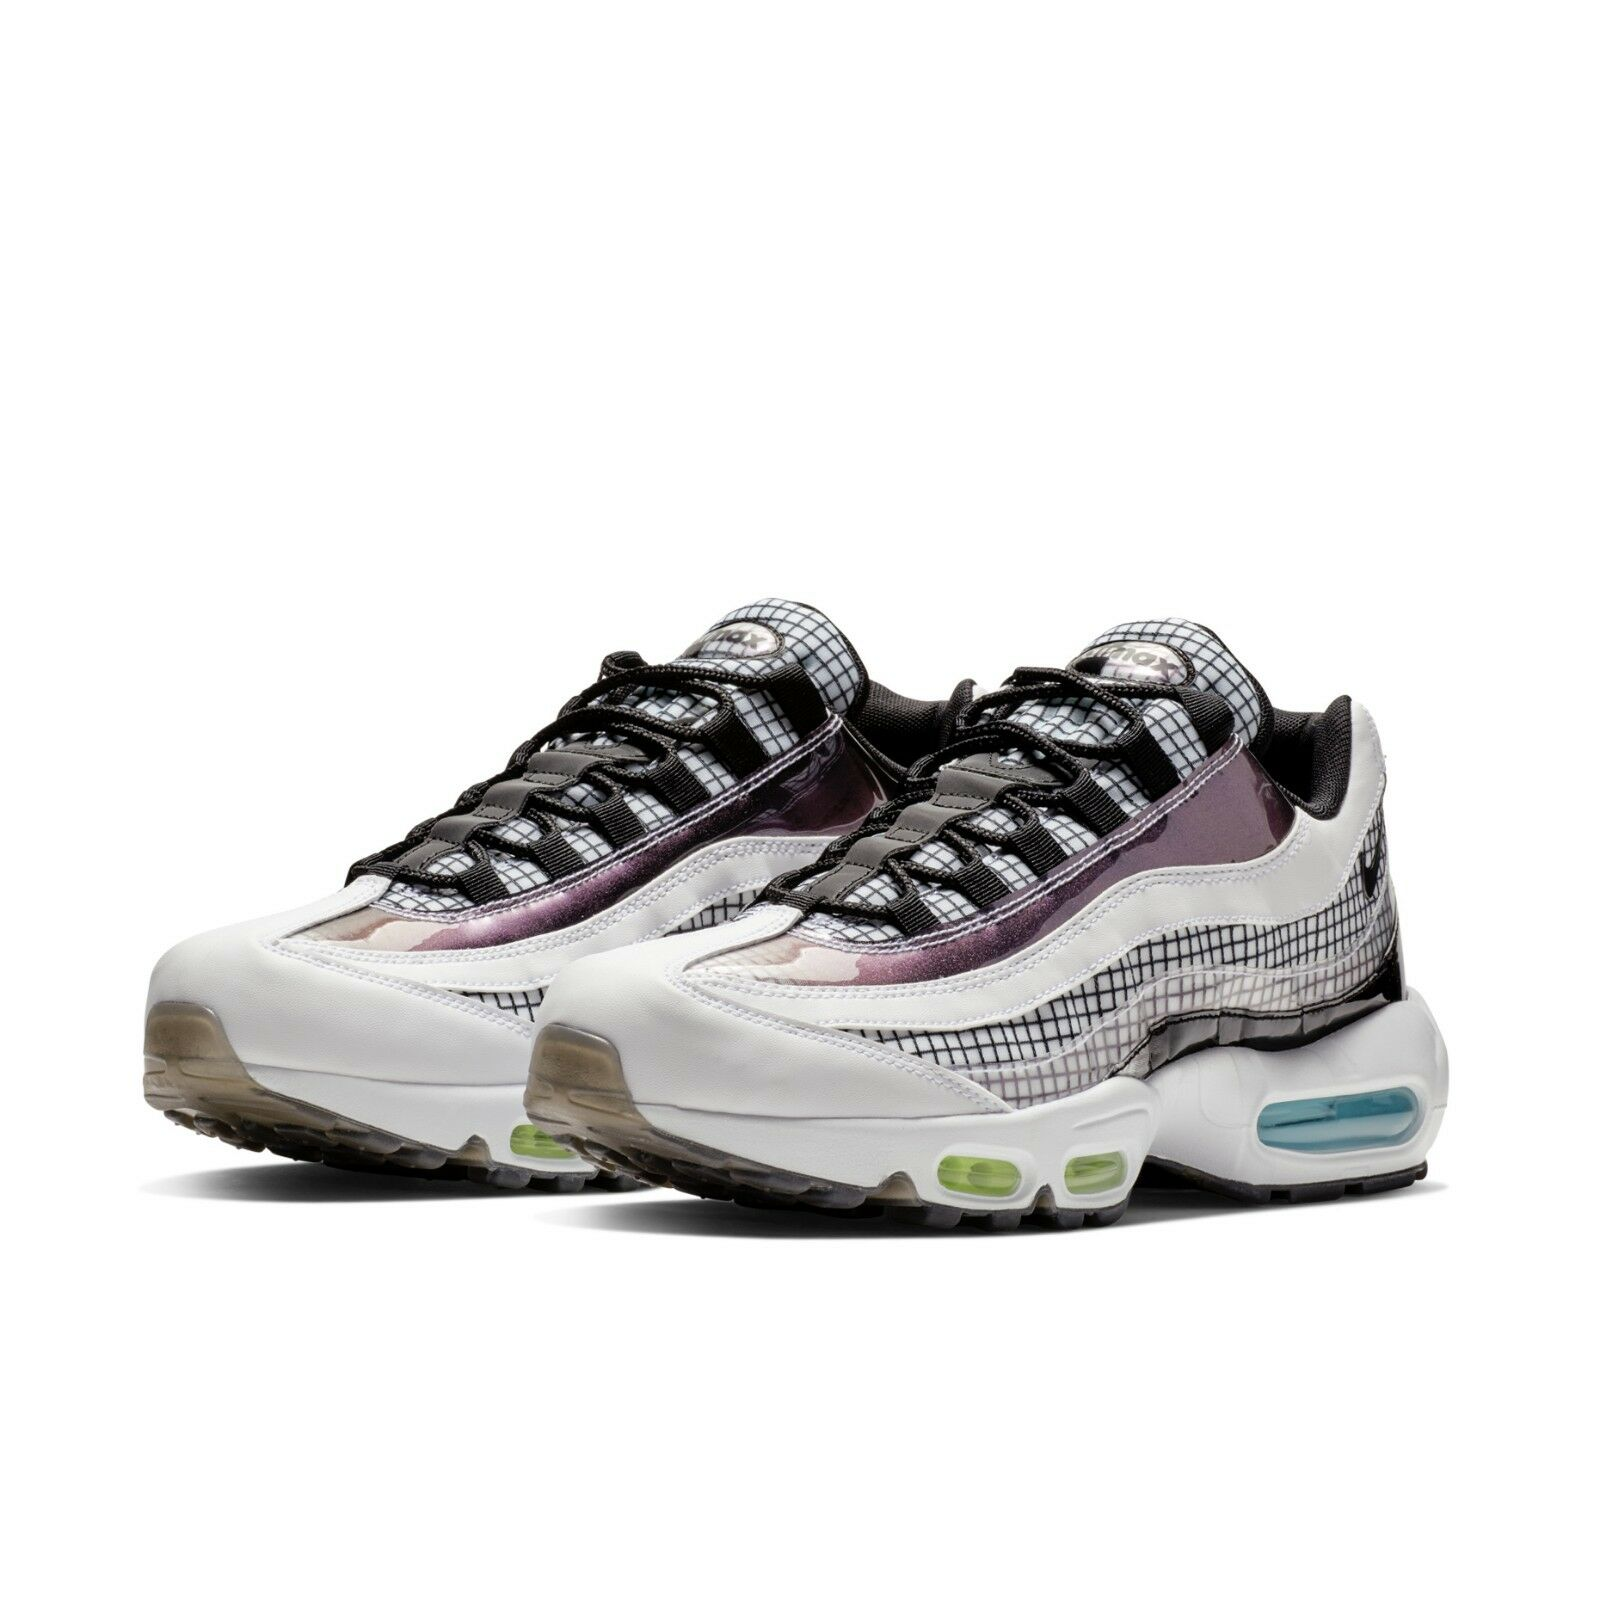 Details about Nike Mens Air Max 95 LV8 Grid Pack White Black Blue Gaze Sneakers AO2450 100